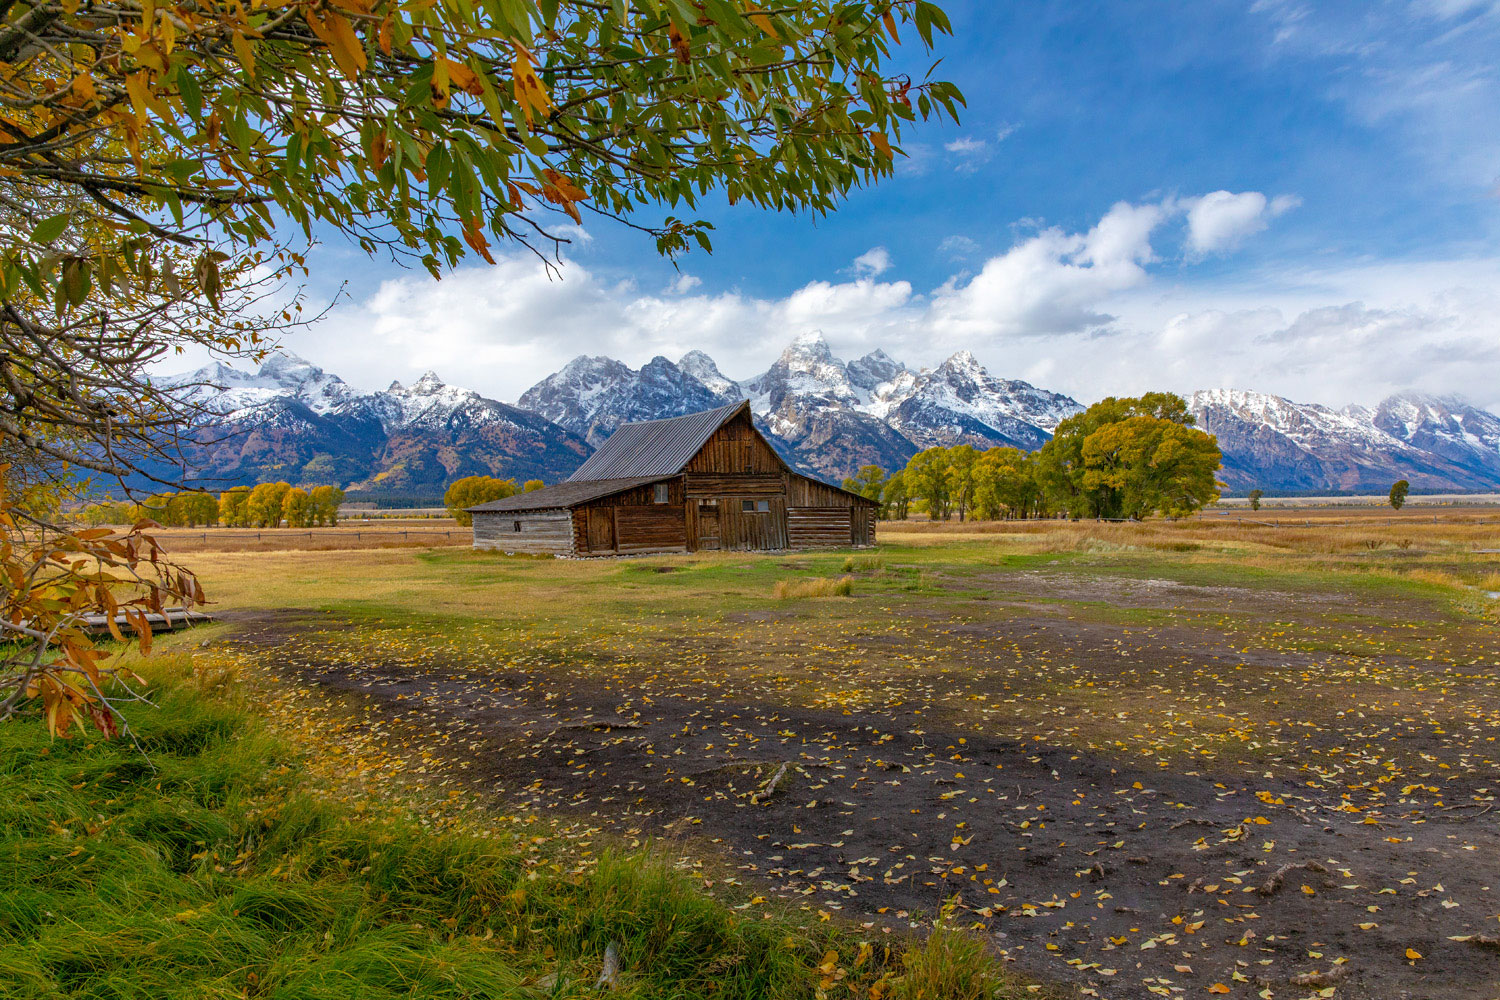 Leaves from the nearby cottonwood blow across the field in front of the Moulton Barn.